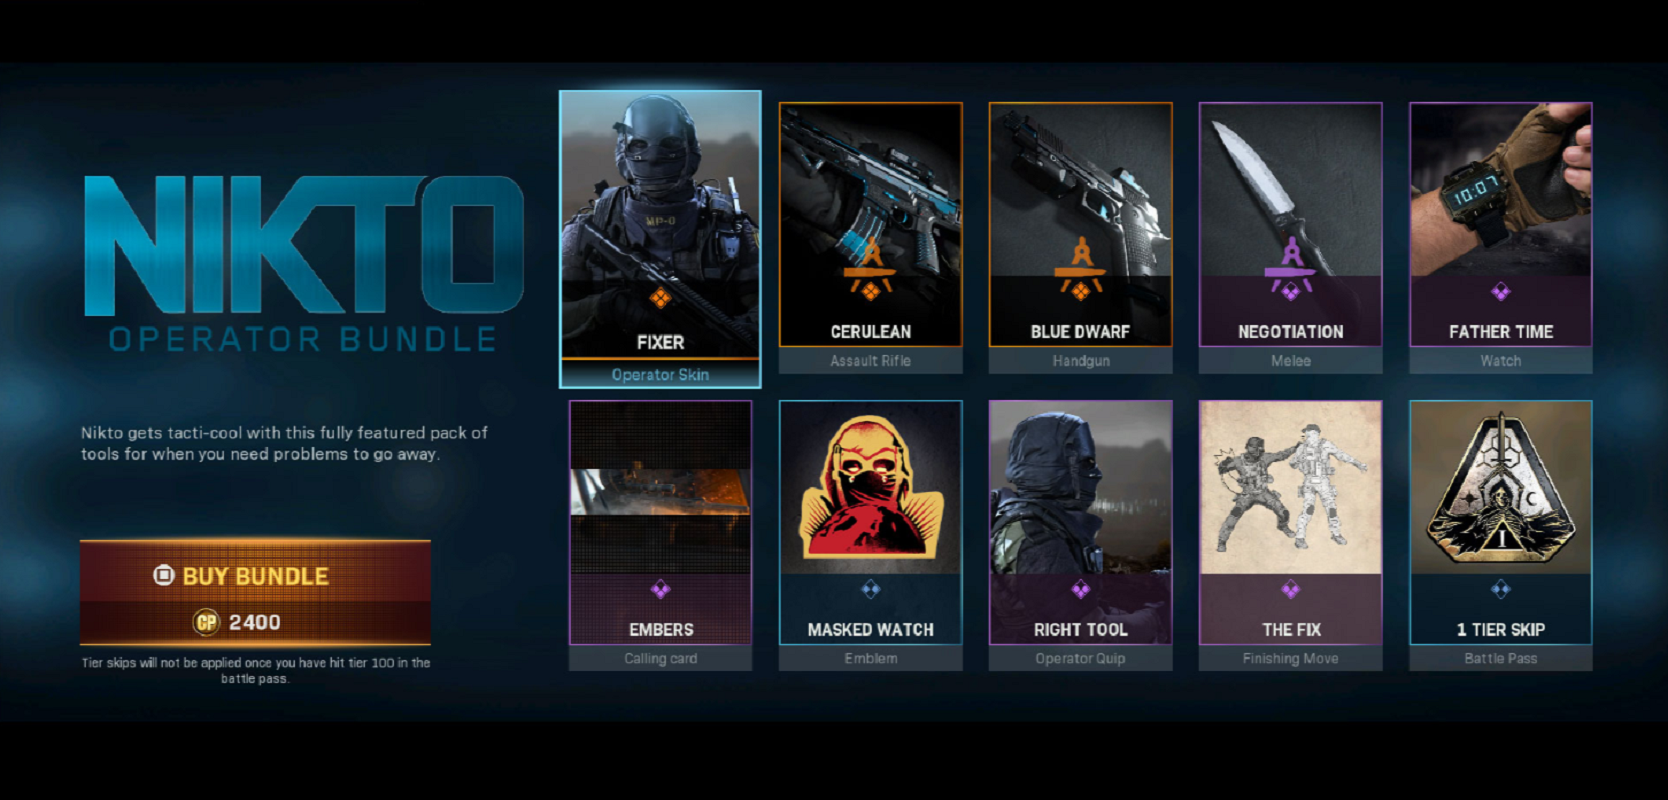 Nikto Operator Bundle Is Jammed Full Of In Game Items For Call Of Duty Modern Warfare Players Including Modern Warfare Call Of Duty Call Of Duty Multiplayer